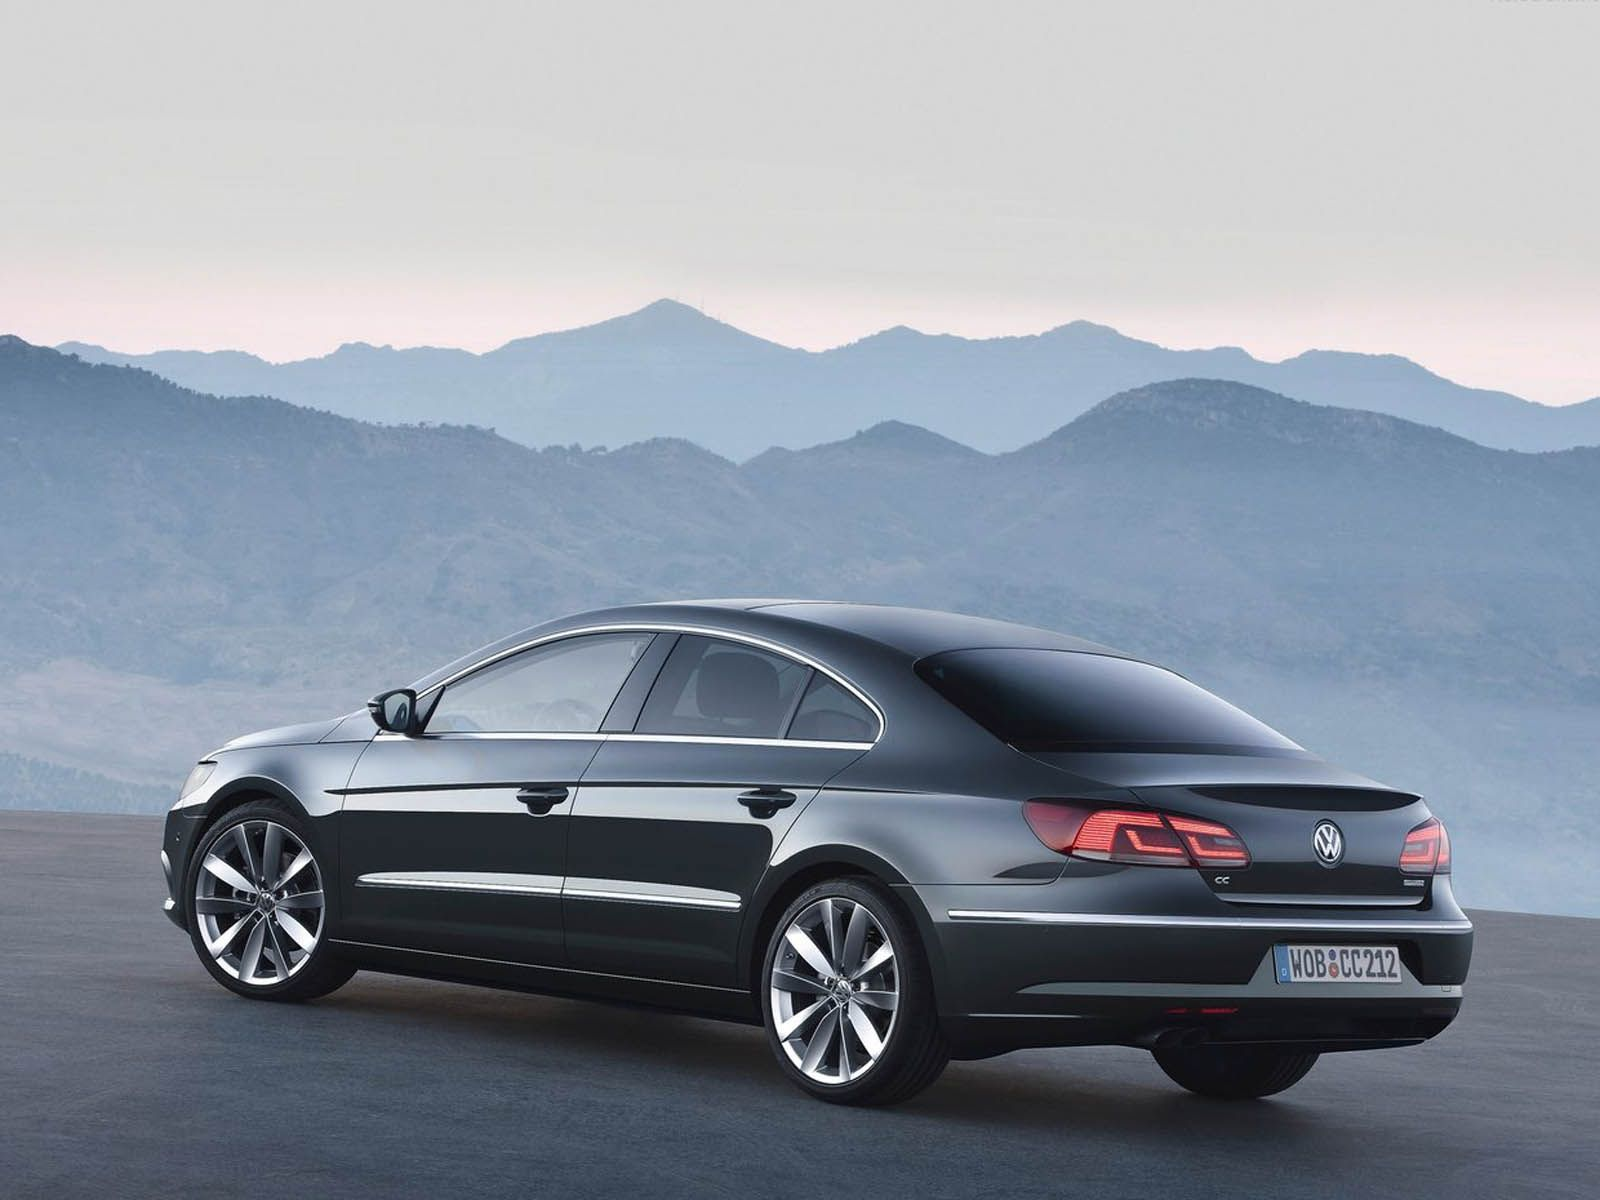 Image for Volkswagen Passat CC 2013 Rear Wallpaper